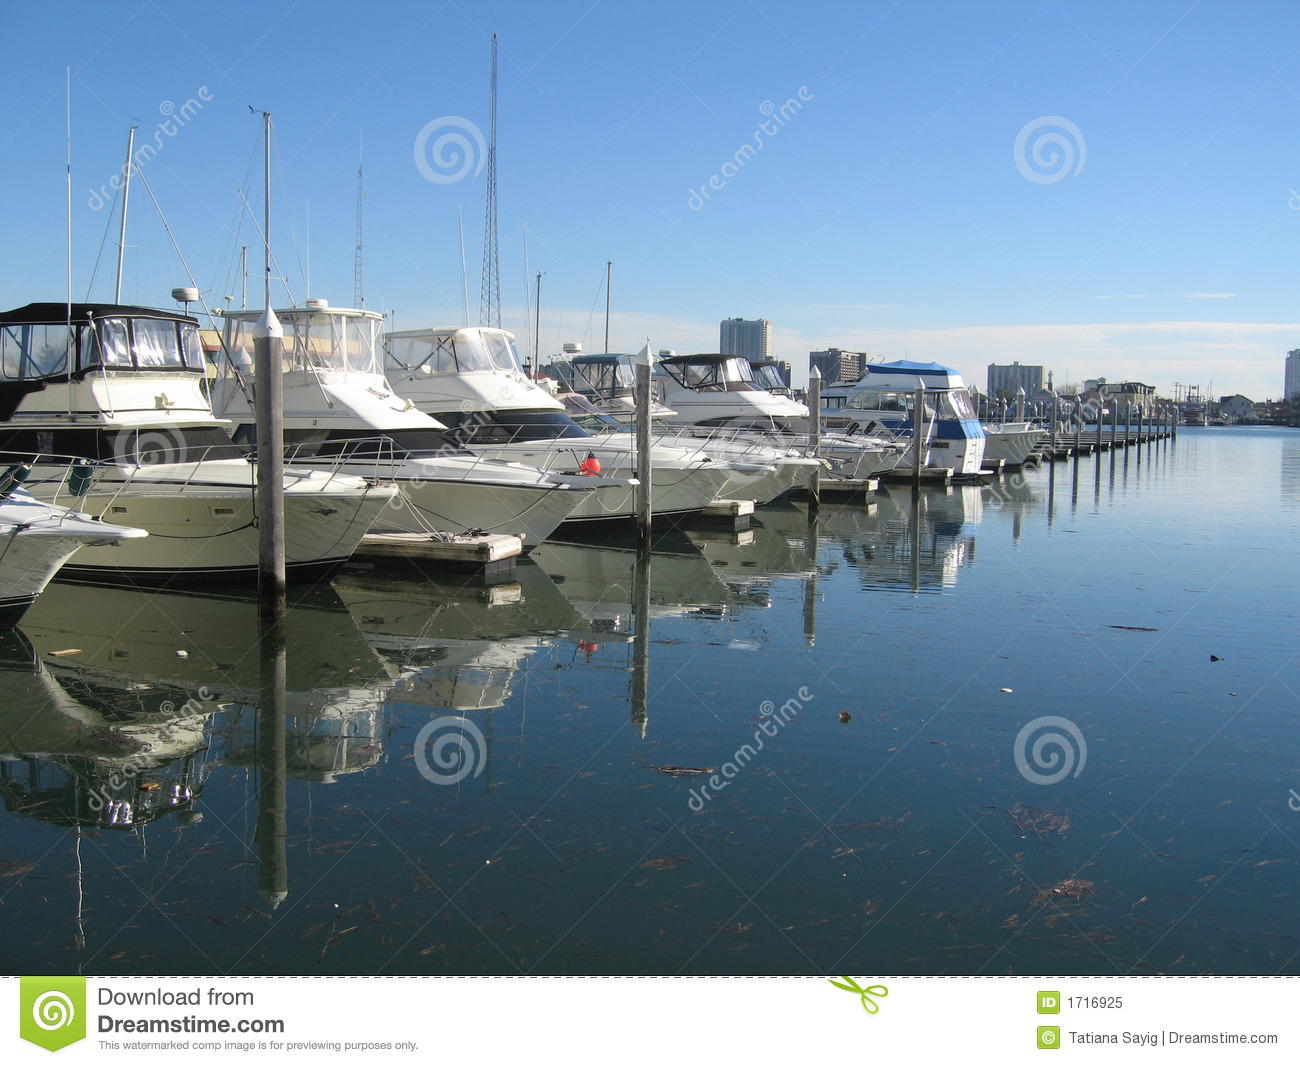 Yachts docked at a pier